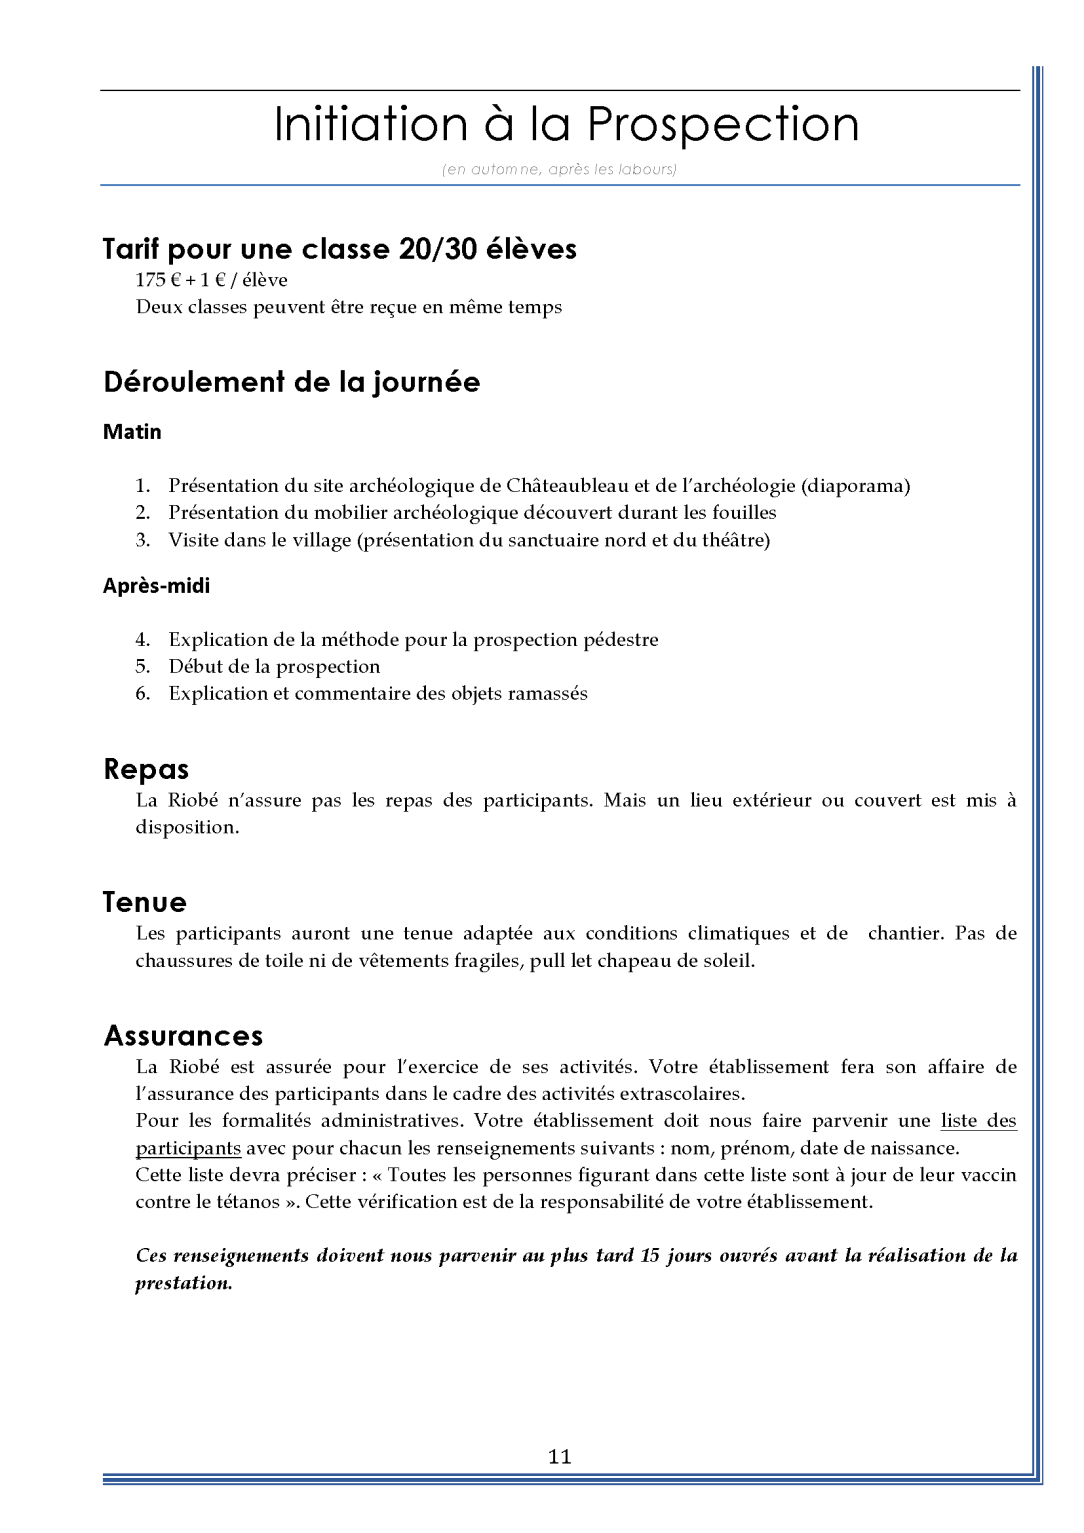 CATALOGUE DES ATELIERS 2015_2016_Page_11.png